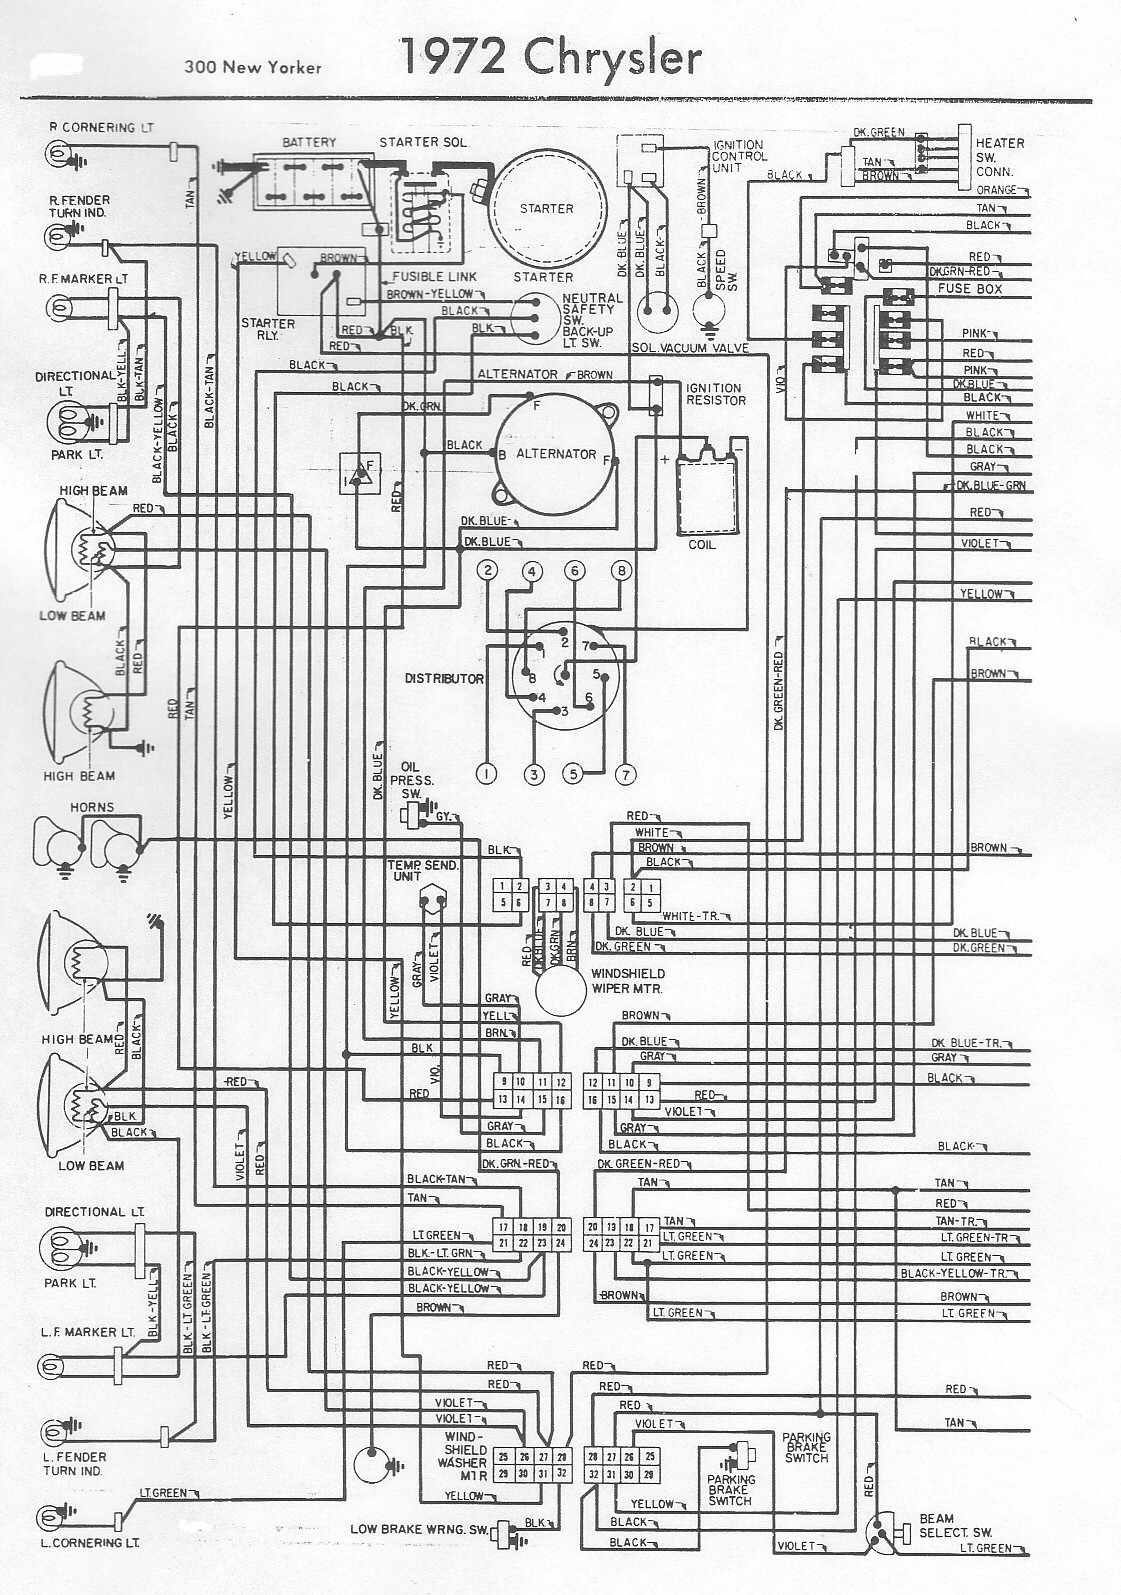 hight resolution of 2006 cadillac wiring diagrams wiring library 2008 dodge dakota electrical schematic 1956 cadillac wiring diagram simple